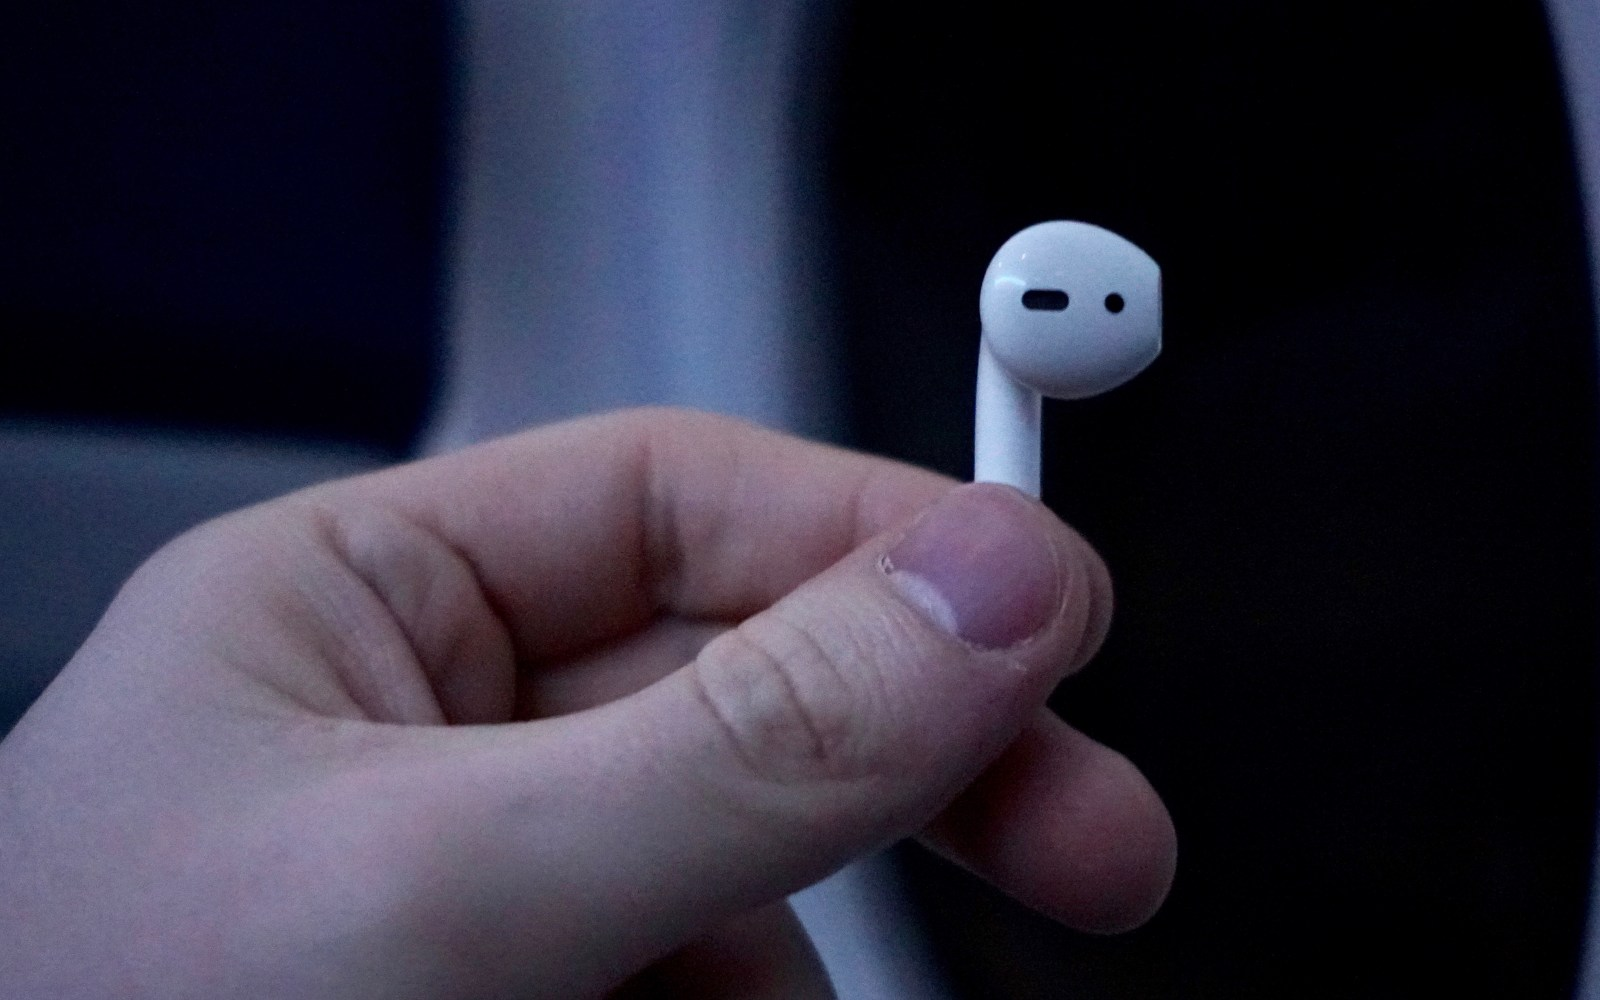 How to view AirPods hardware details, check and update firmware [Video]